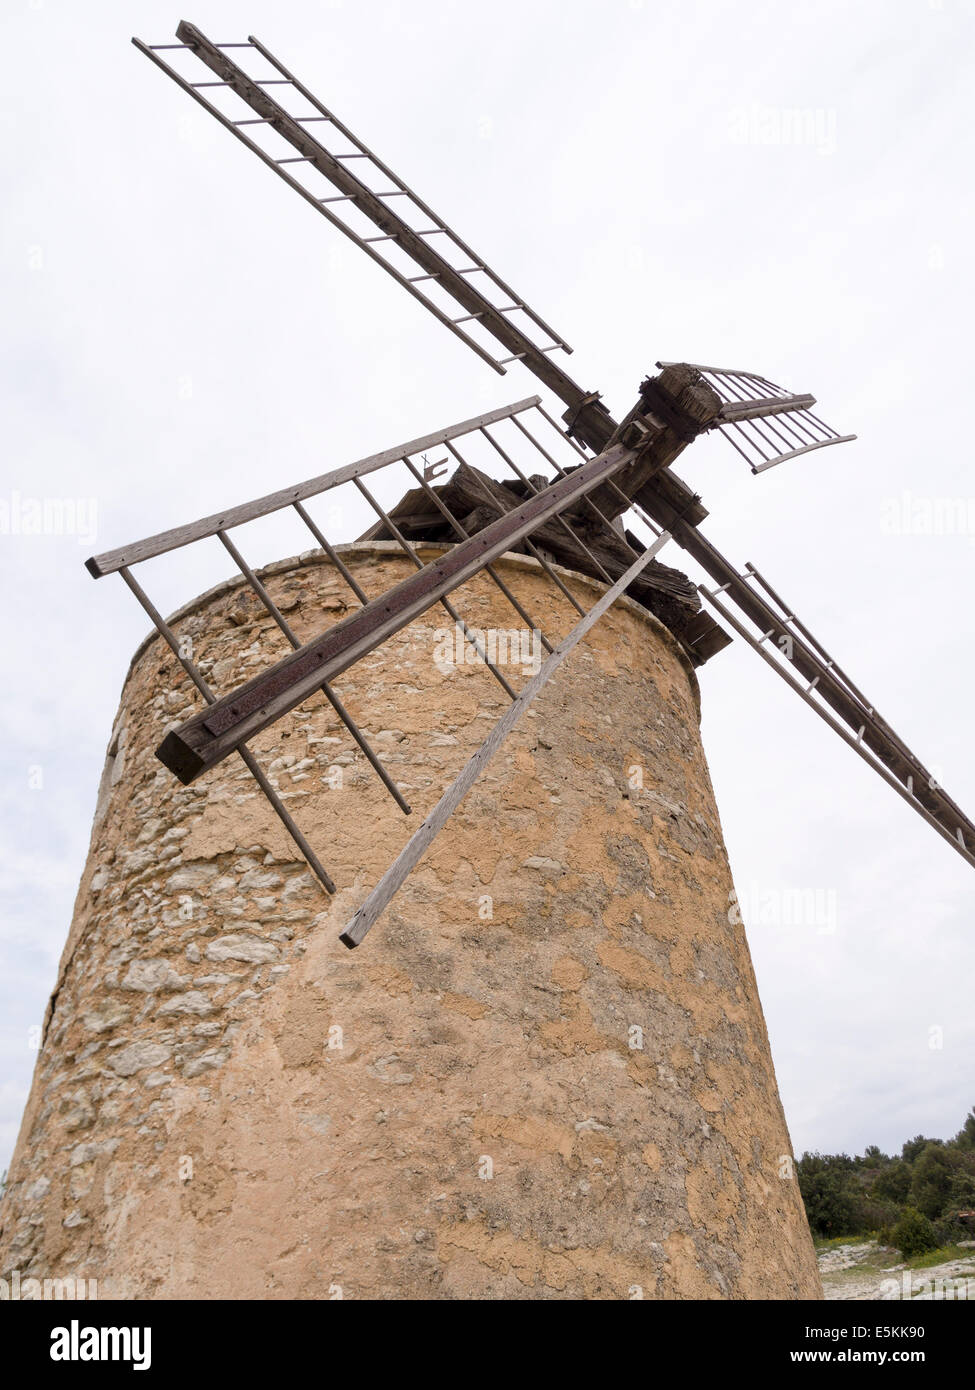 Old disused Windmill high above the village. The stone tower topped by wooden vanes warped and split by the weather. - Stock Image